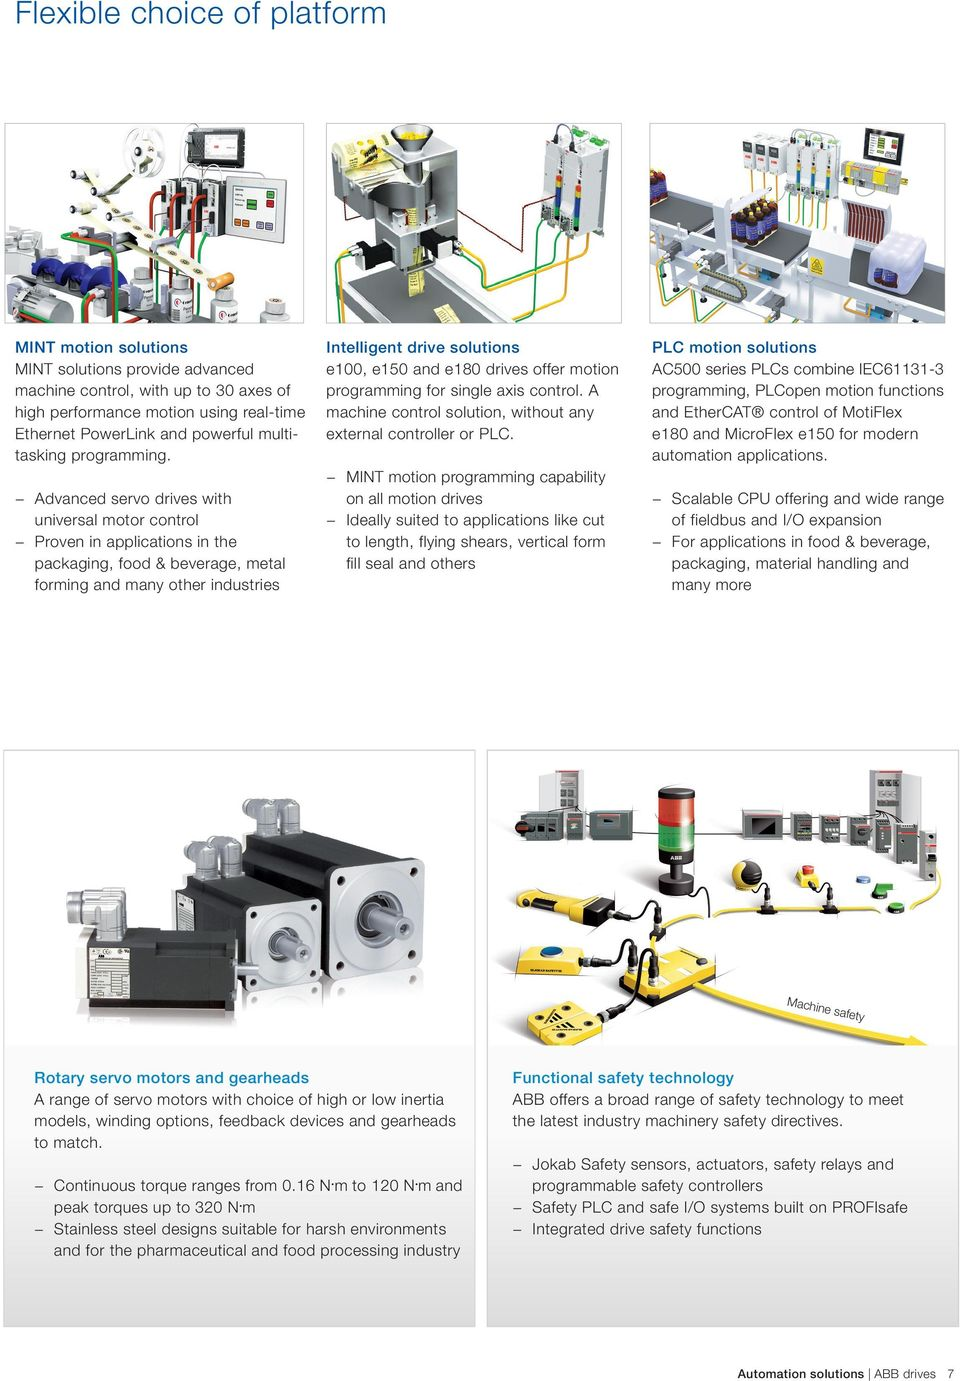 Abb Drives Automation Solutions Plc Motion Motors And Ac Servo Motor Control Algorithm Advanced With Universal Proven In Applications The Packaging Food